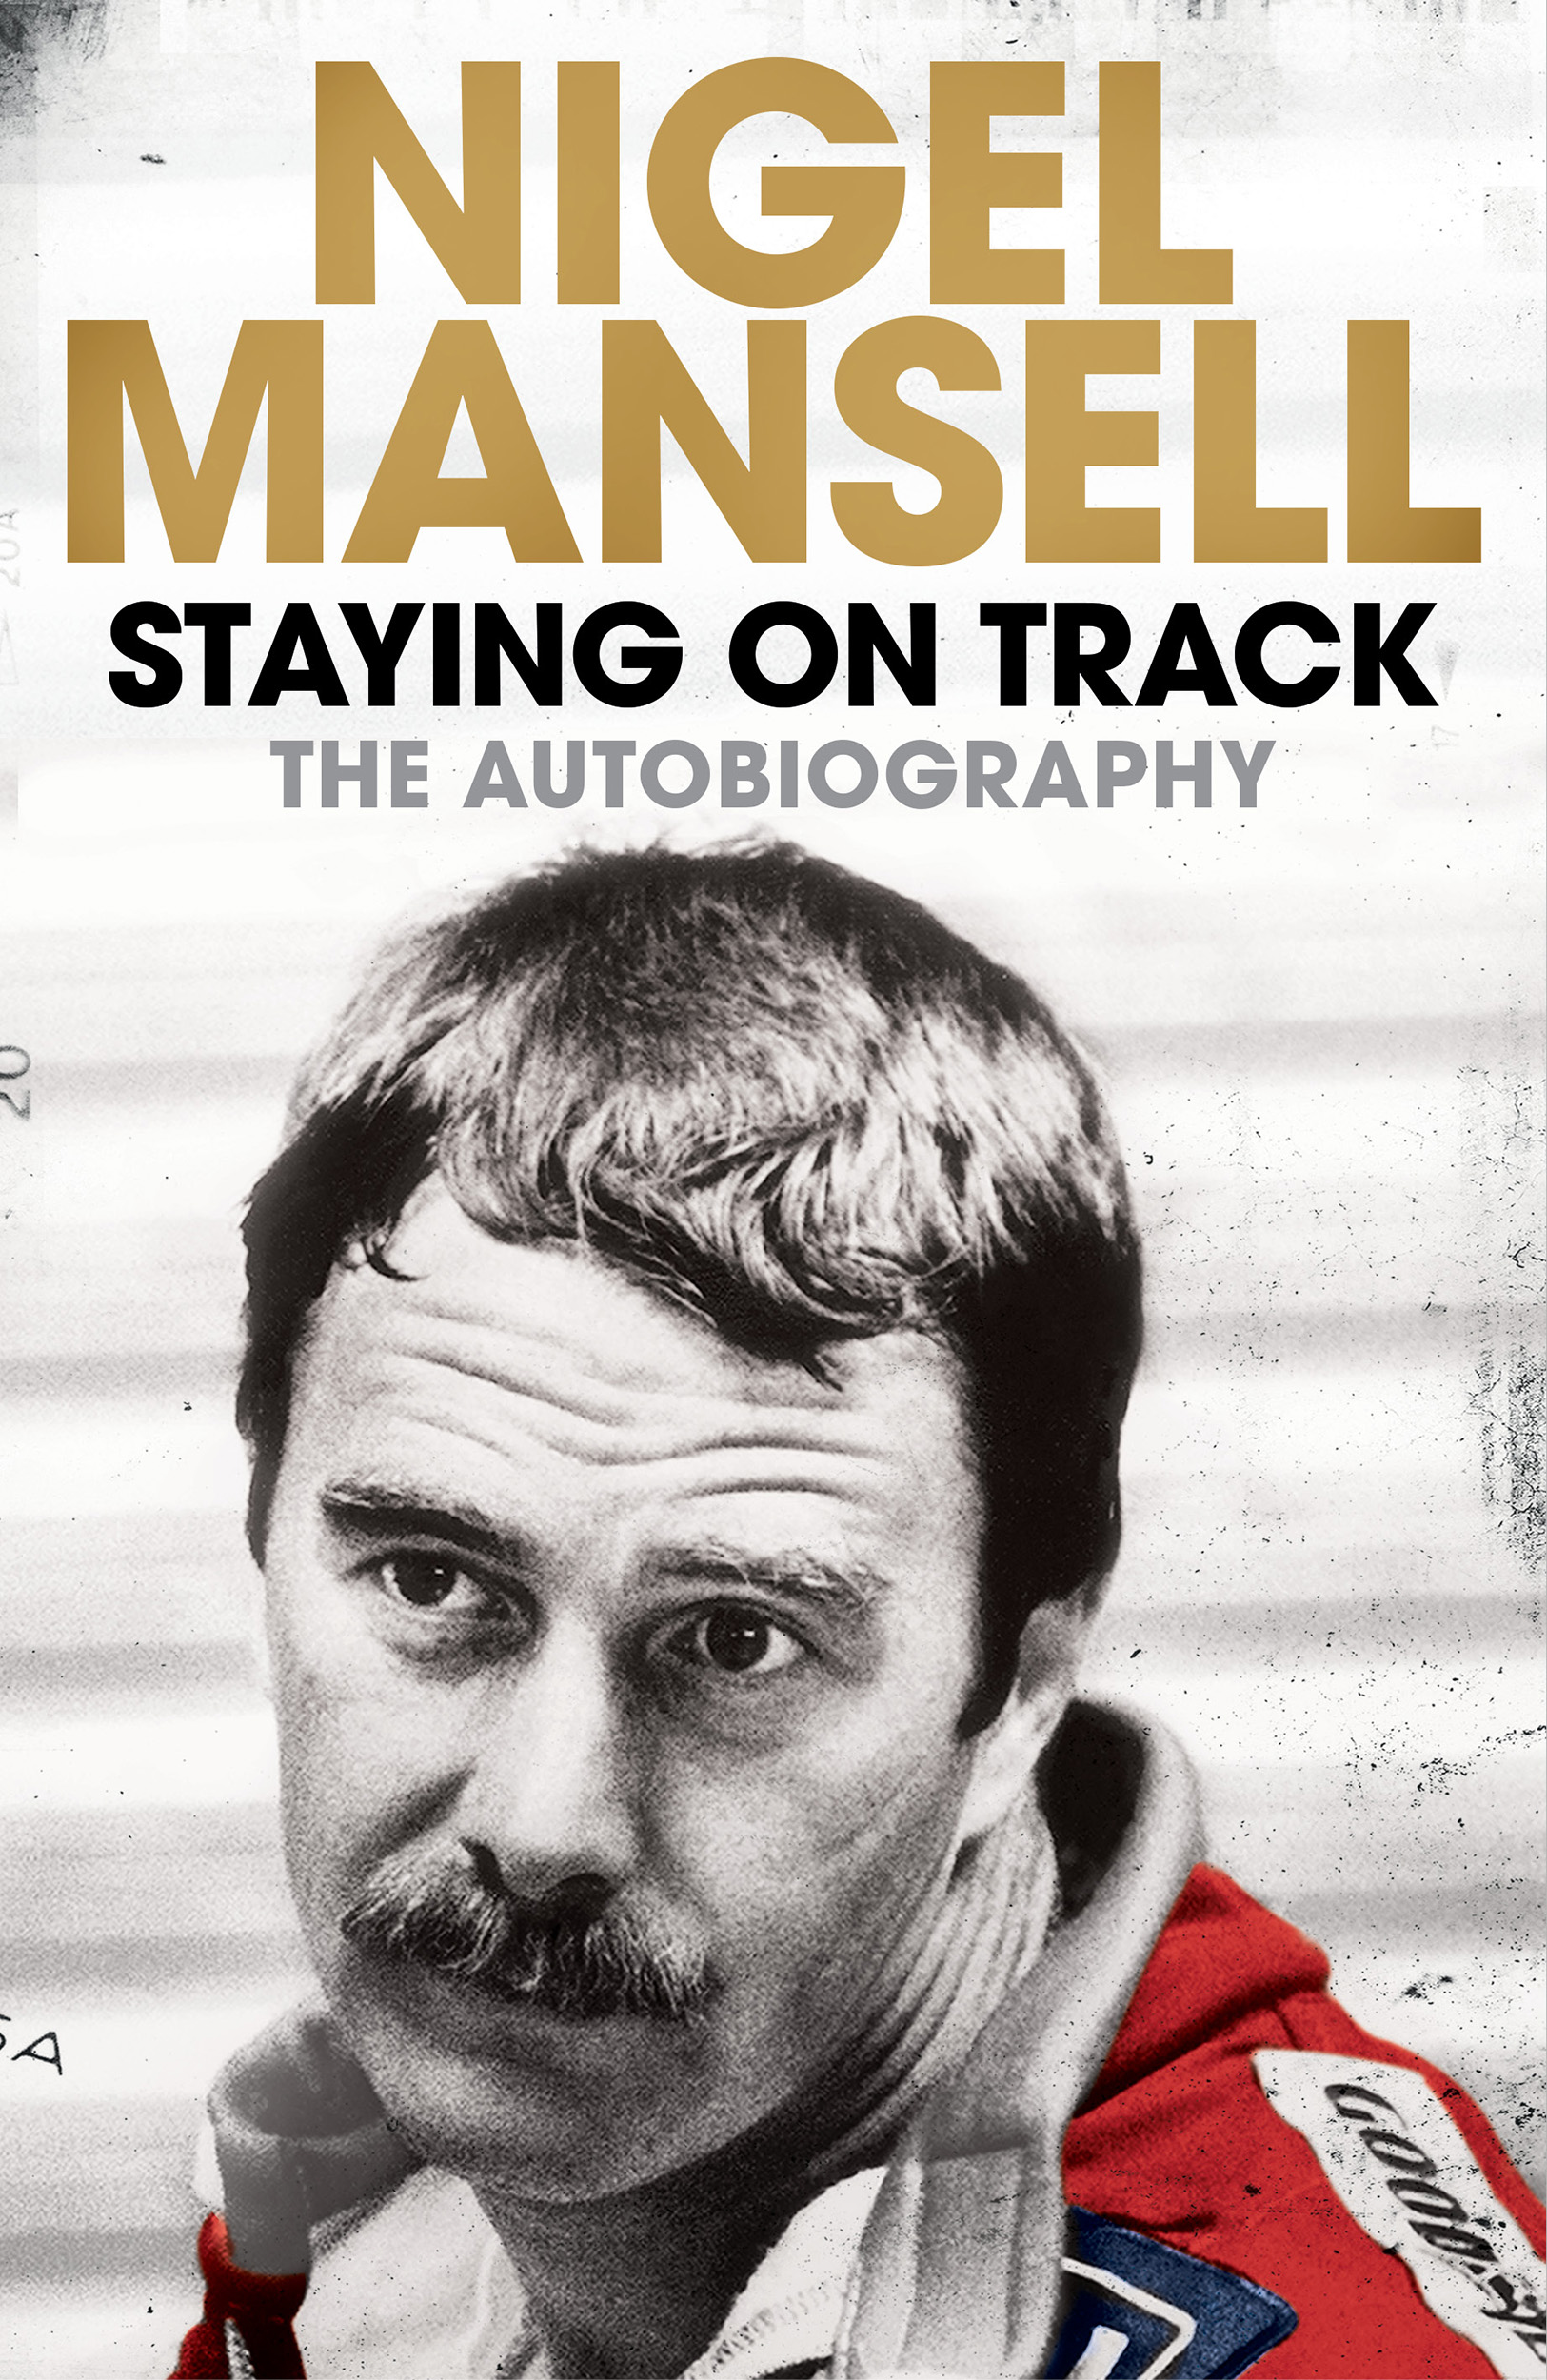 Sports Book Review - Staying On Track